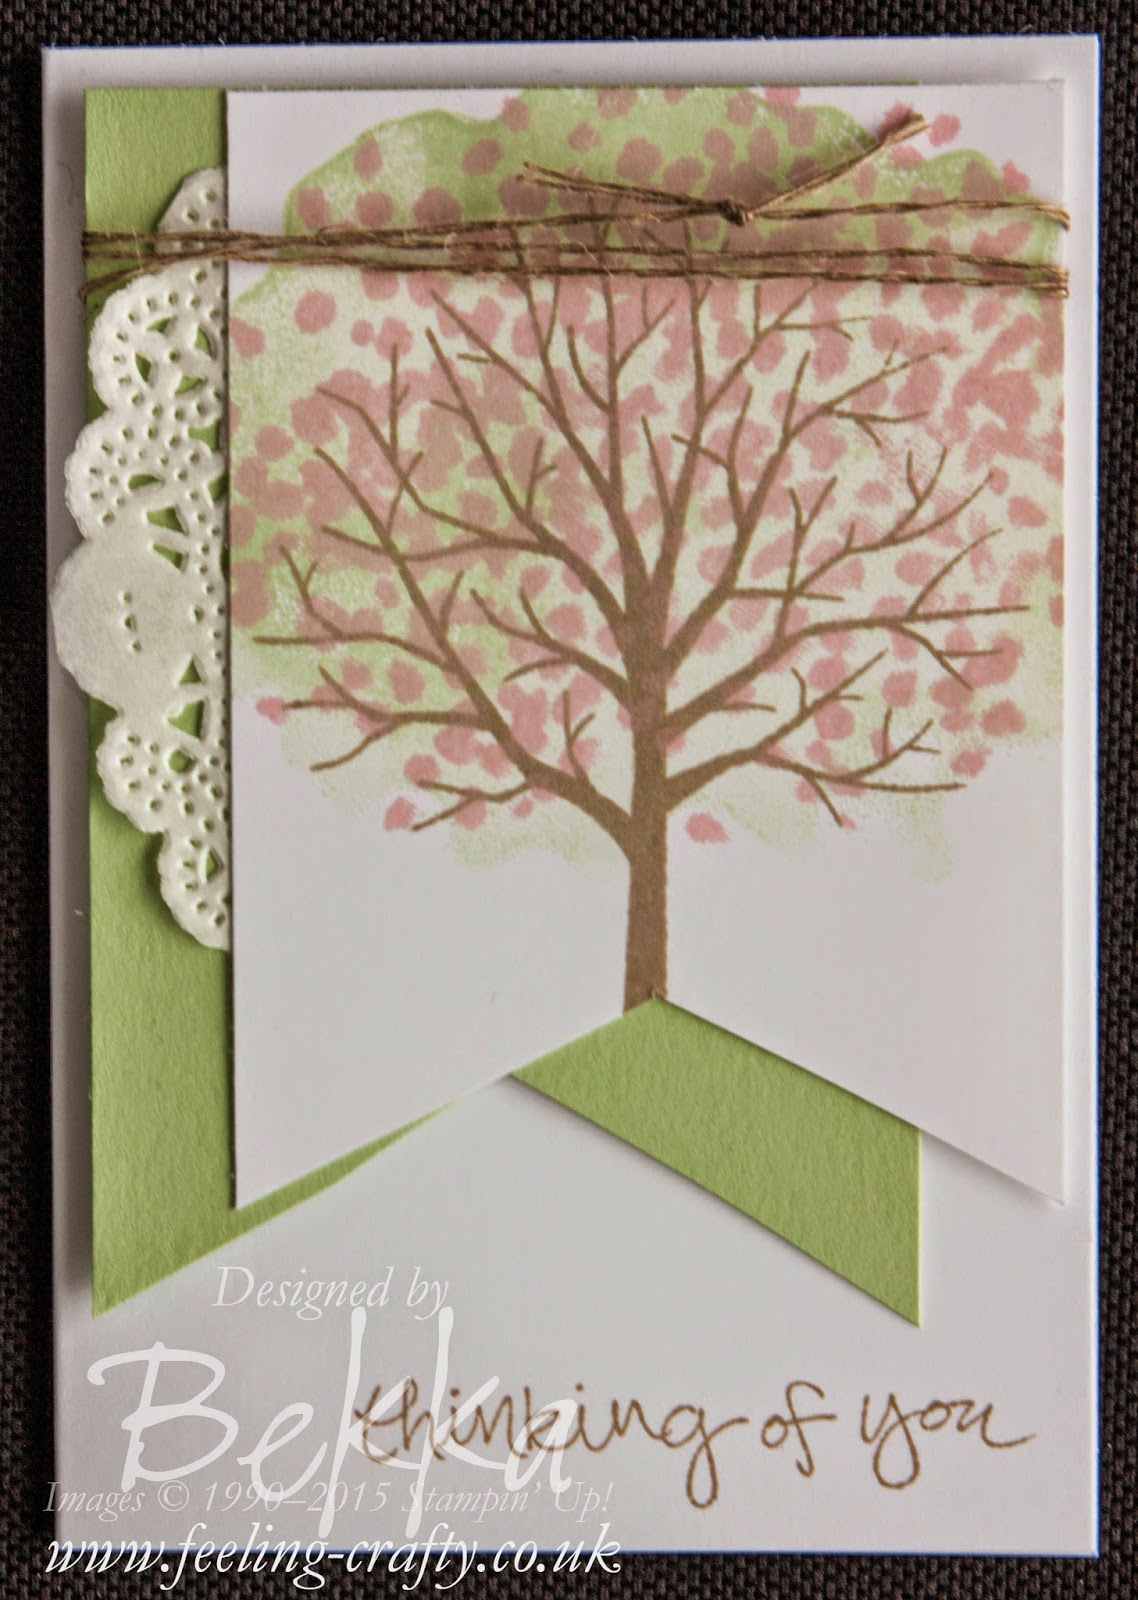 Sheltering Tree Note Card and Variations - Check them out here